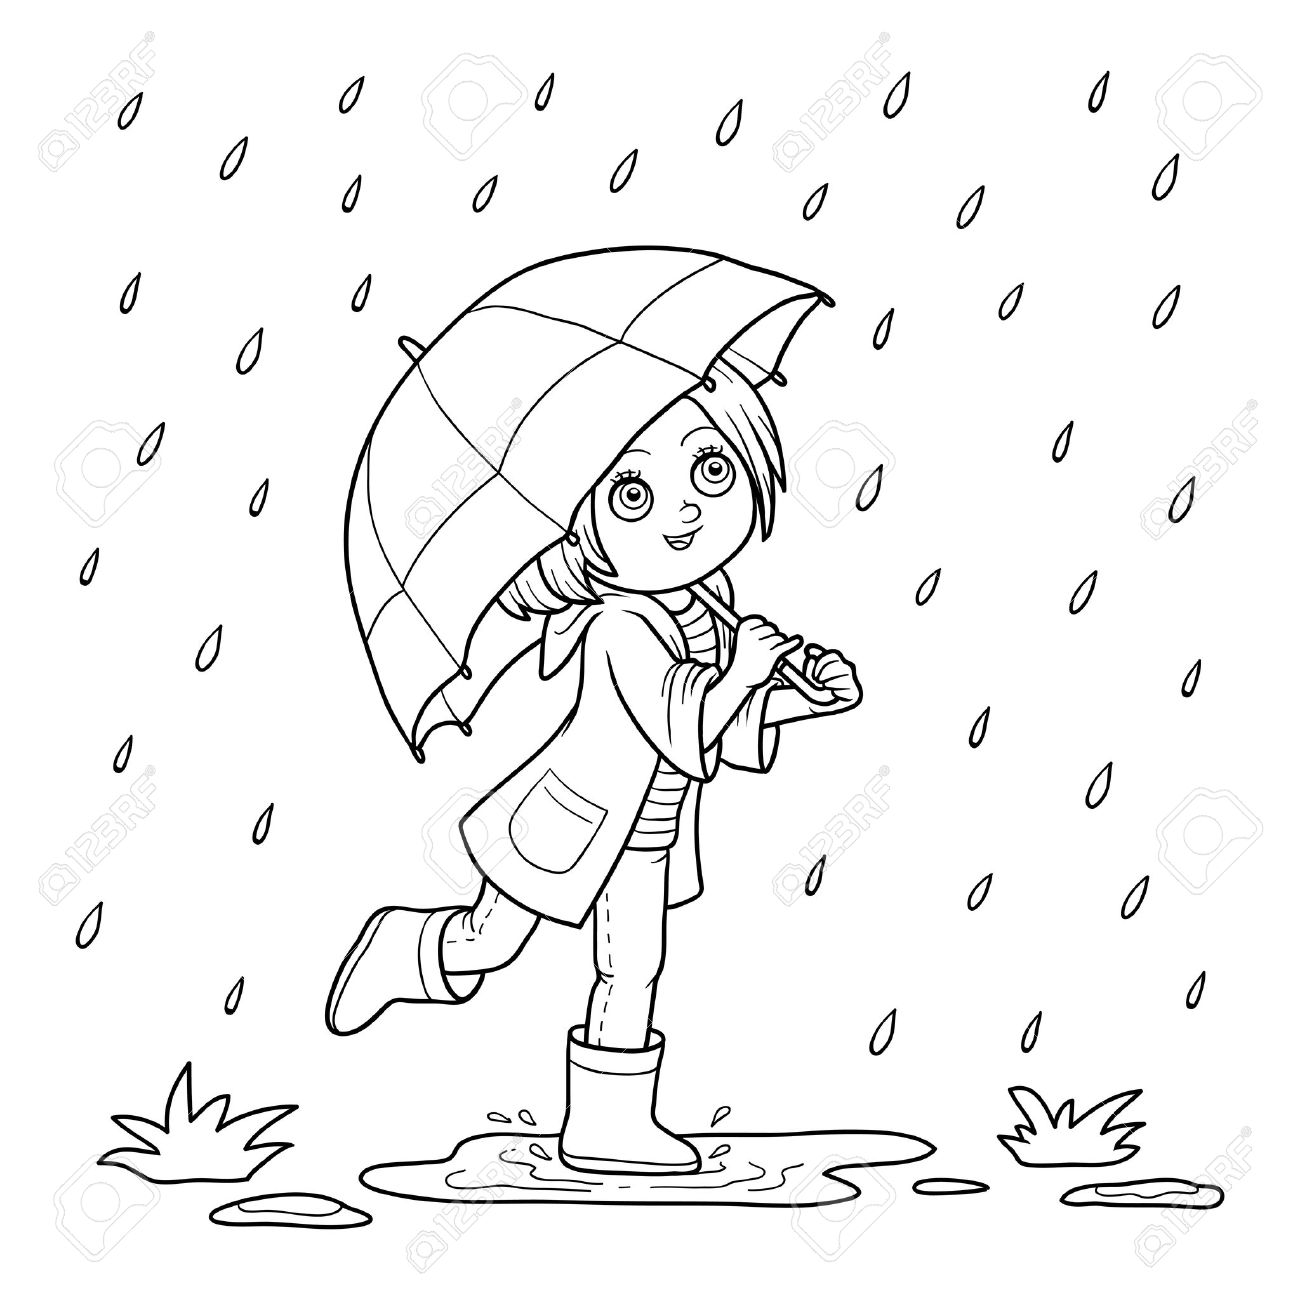 Coloring Book For Children Girl Running With An Umbrella In The Rain Stock Vector